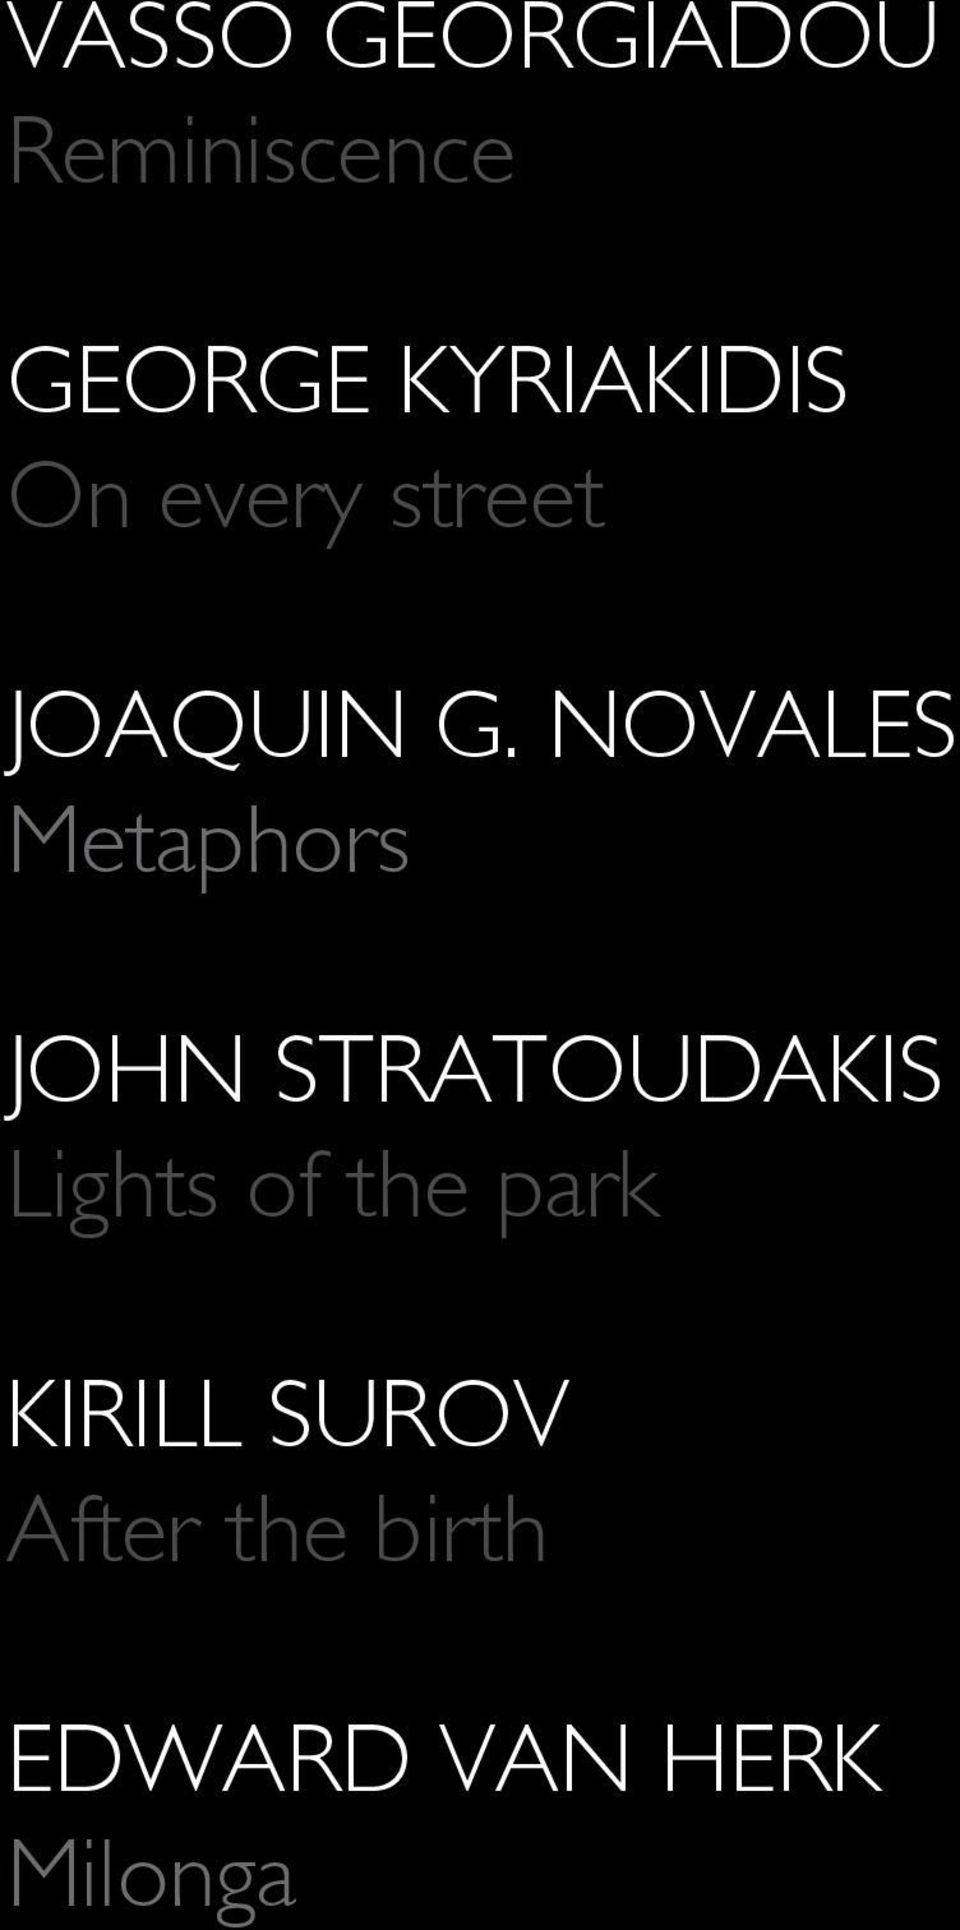 novales Metaphors john stratoudakis Lights of